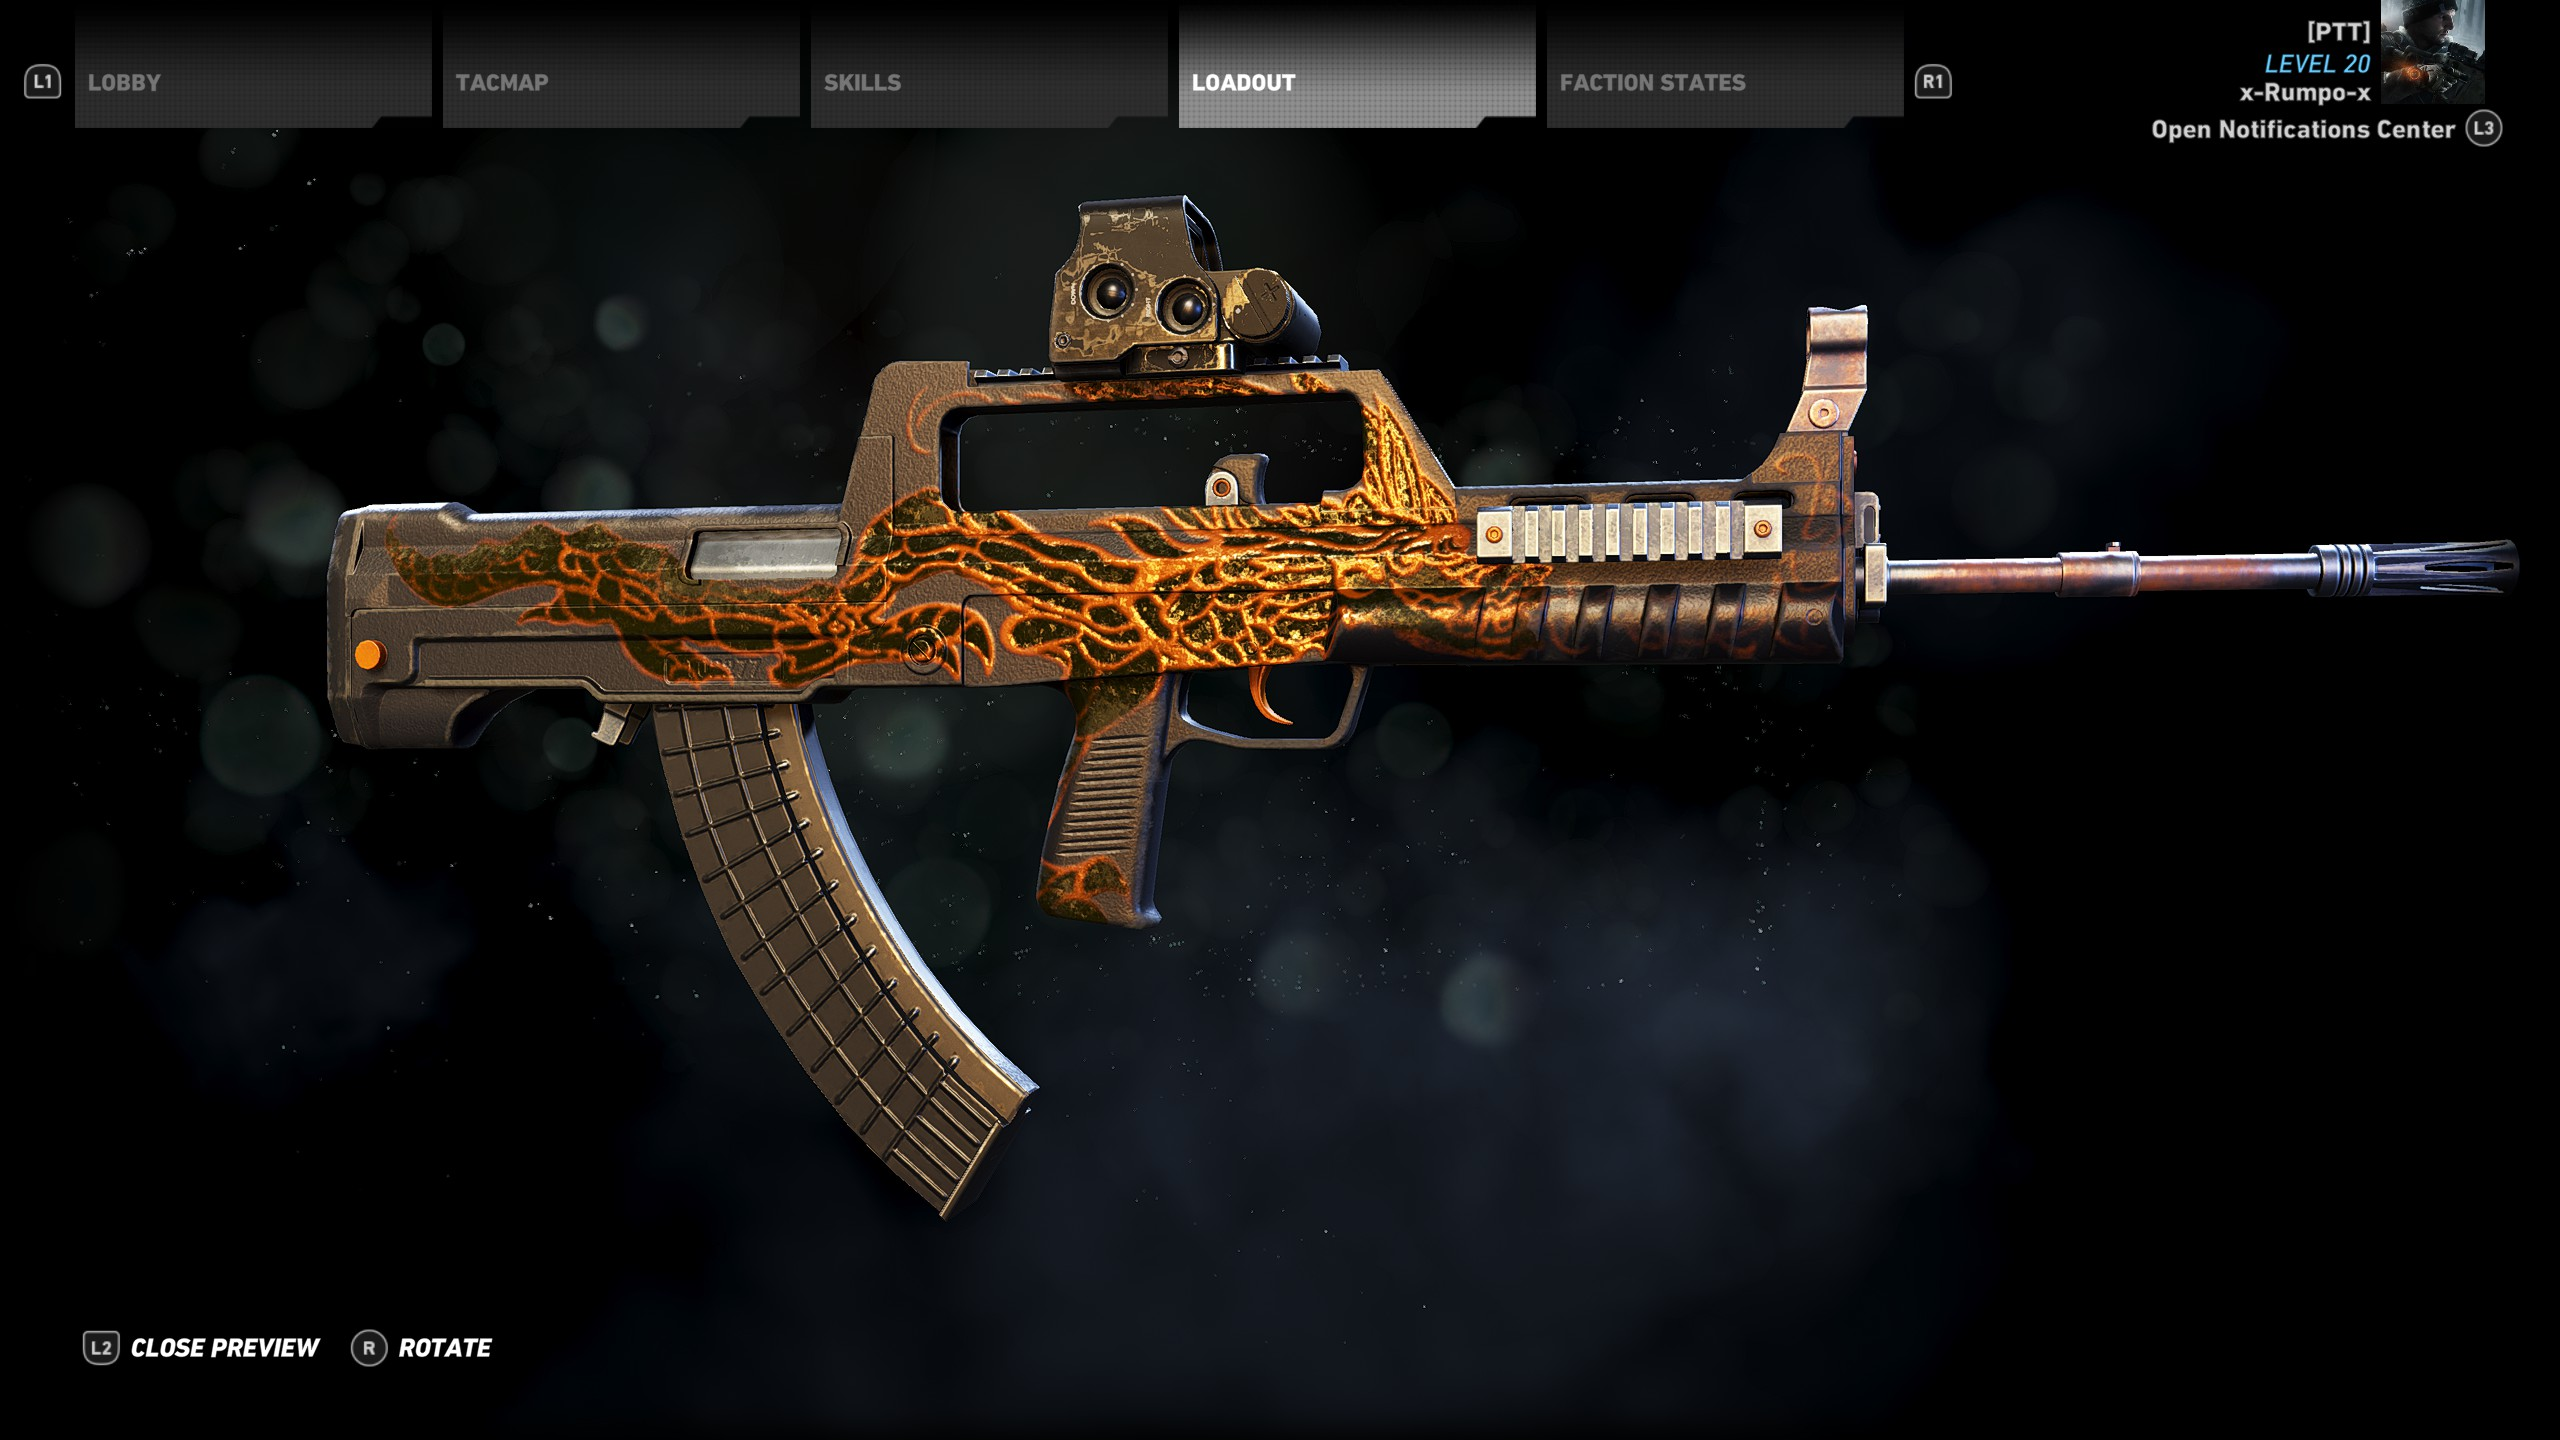 You cannot customize the Dragonbreath Light Machine Gun in Narco Road.